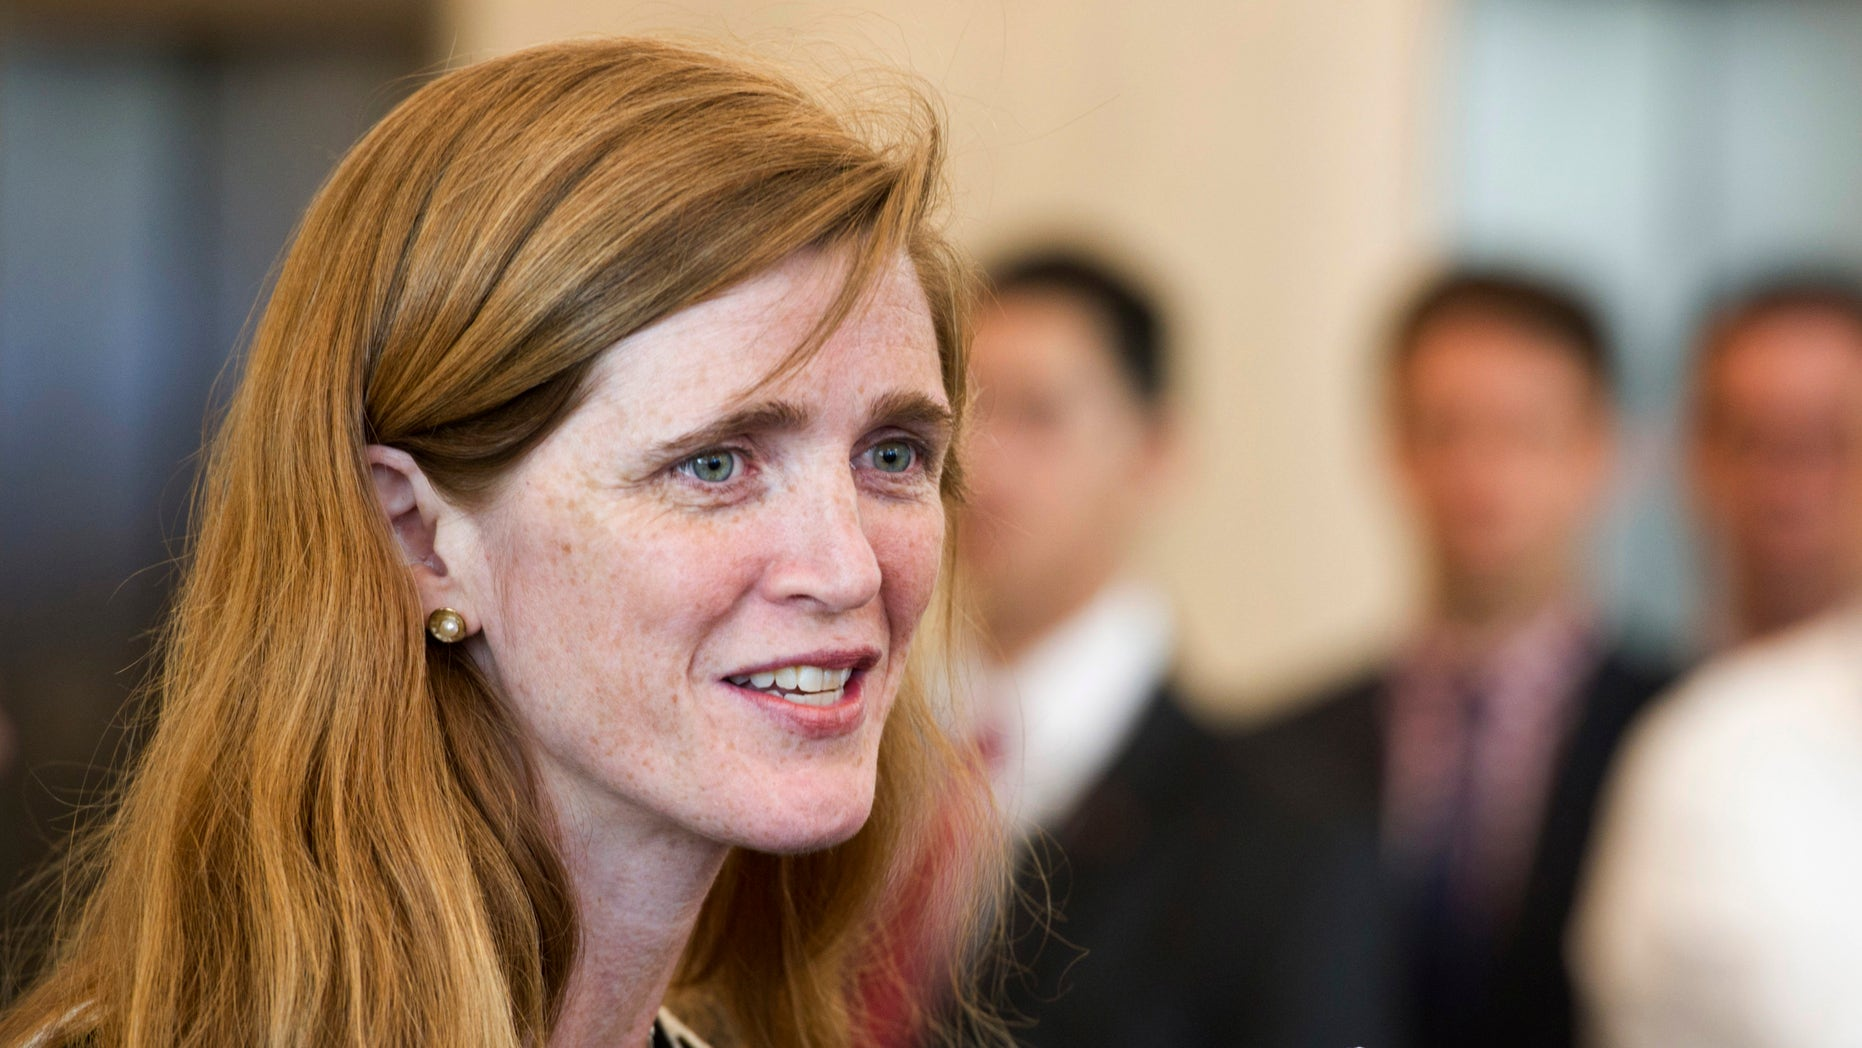 In a photo provided by the United Nations, the United States new ambassador to the UN Samantha Power speaks before presenting her credentials to UN Secretary General Ban Ki-moon, Monday, Aug. 5, 2013, at UN headquarters.  A former foreign policy adviser to President Barack Obama, Power succeeds Susan Rice, now the president's national security adviser. (AP Photo/Mark Garten, United Nations)